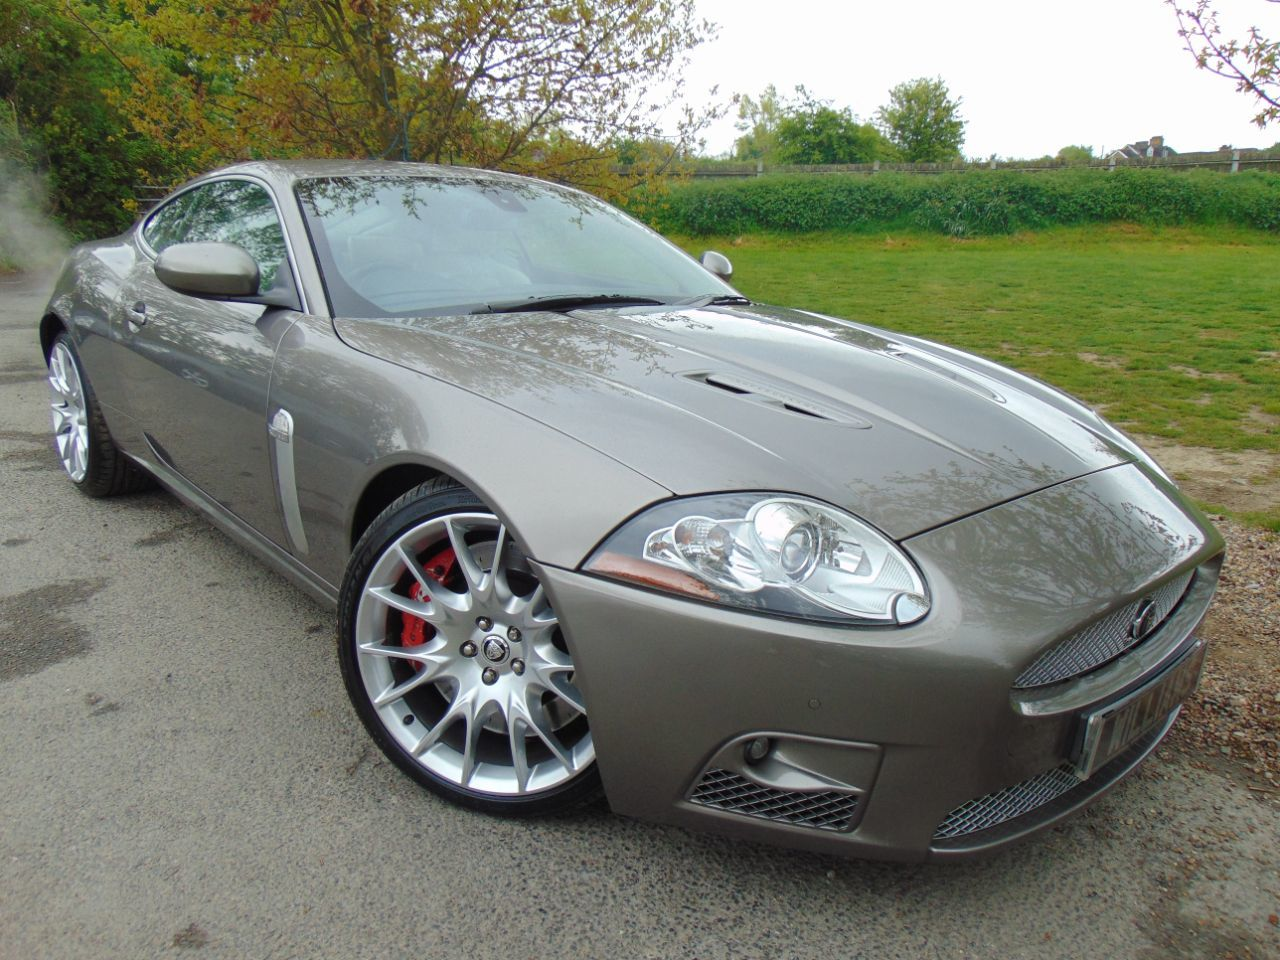 Jaguar Xkr 4.2 Supercharged V8 2dr Auto (Ivory Trim! Alpine Sound! ++) Coupe Petrol Winter Gold Pearl